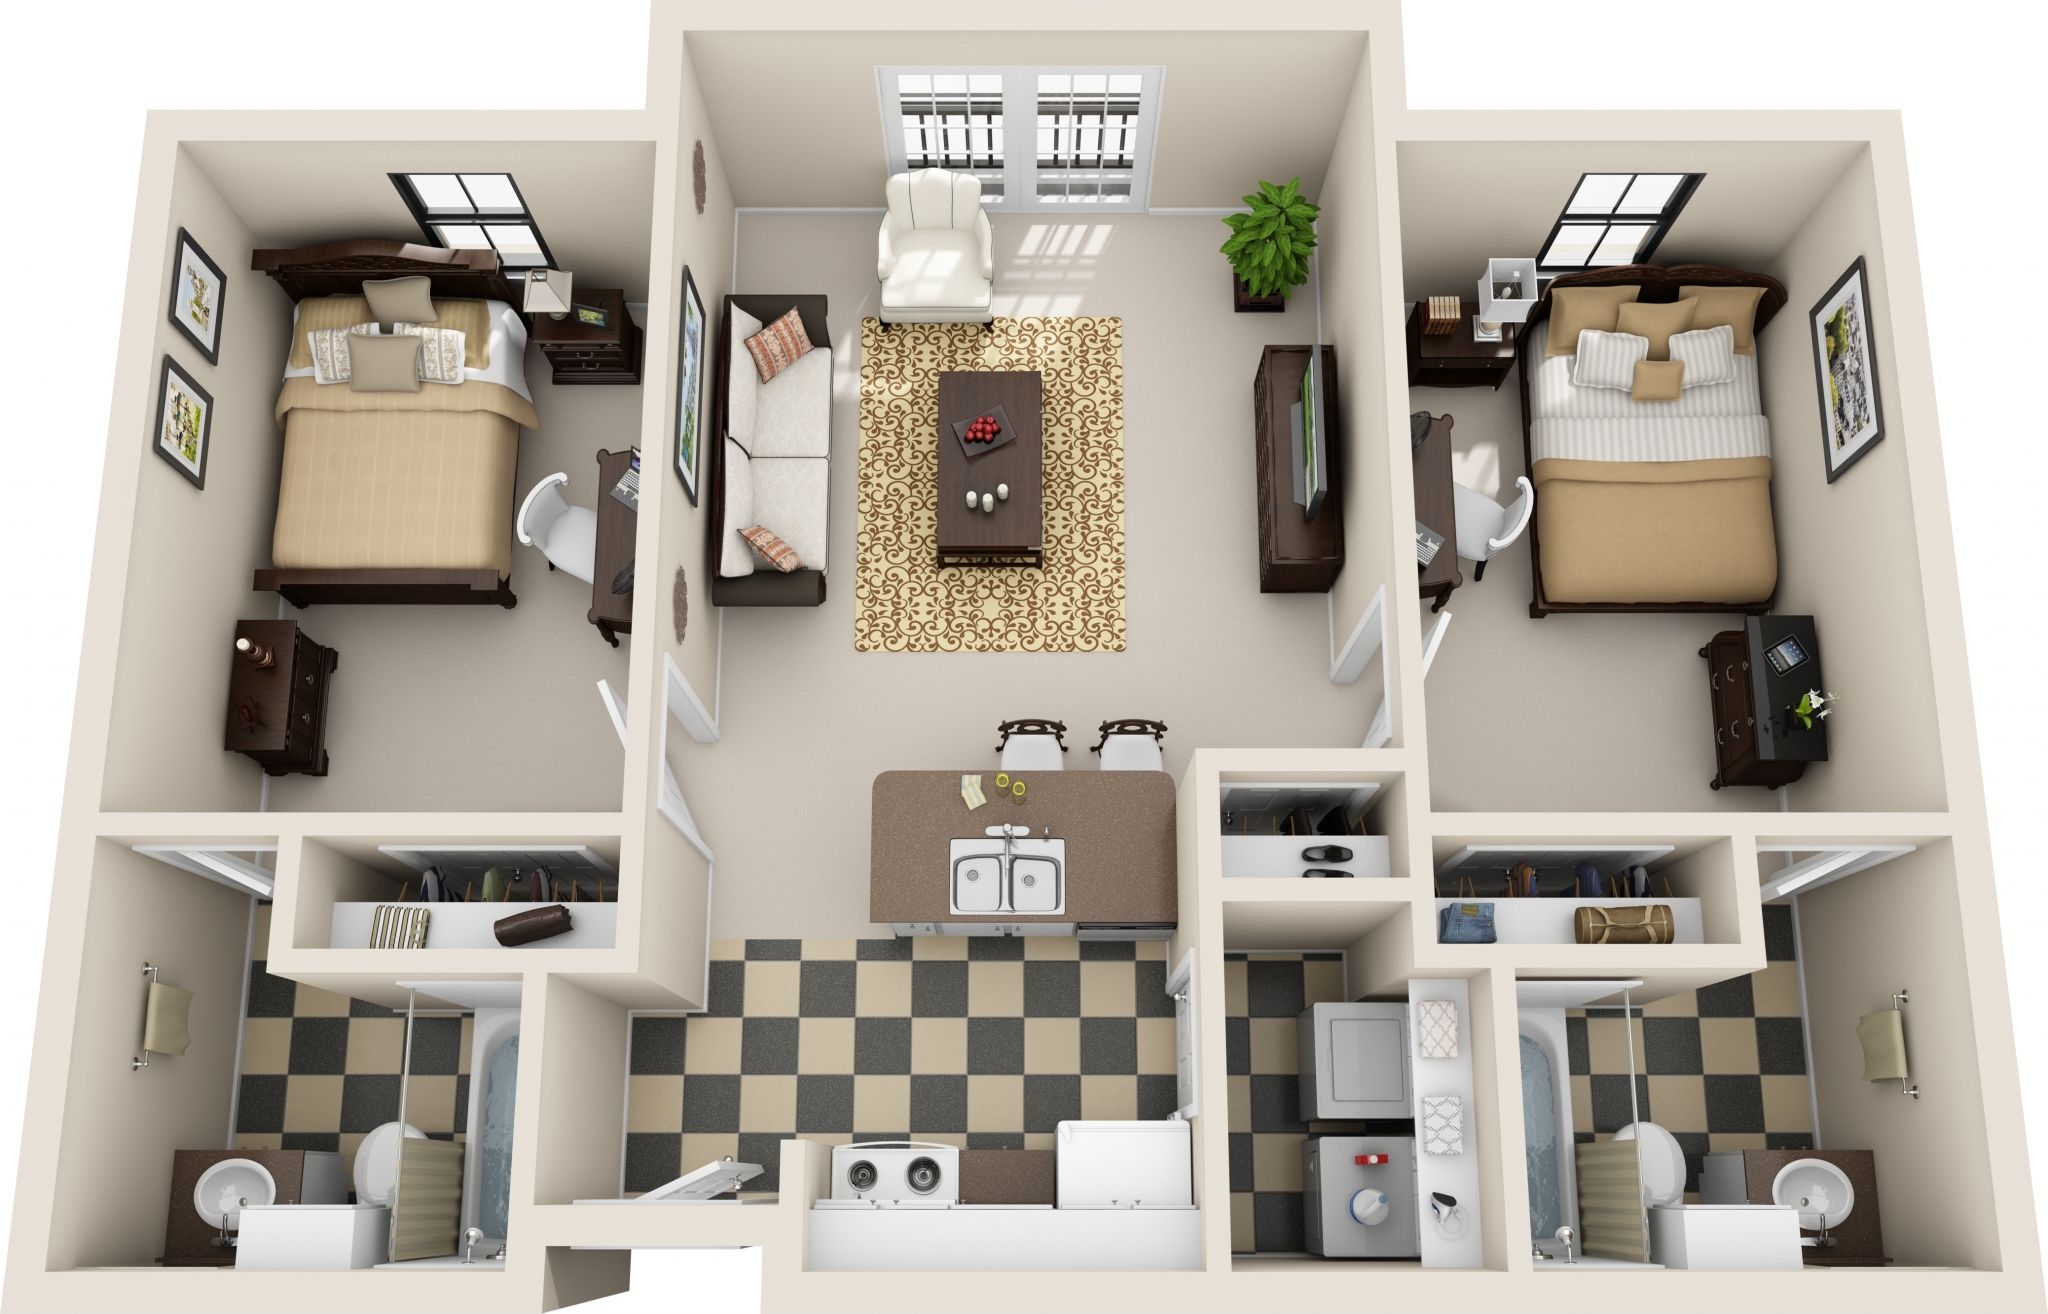 2 Bedroom Apartment Two Bedroom Apartments 2 Bedroom Apartment Renting A House